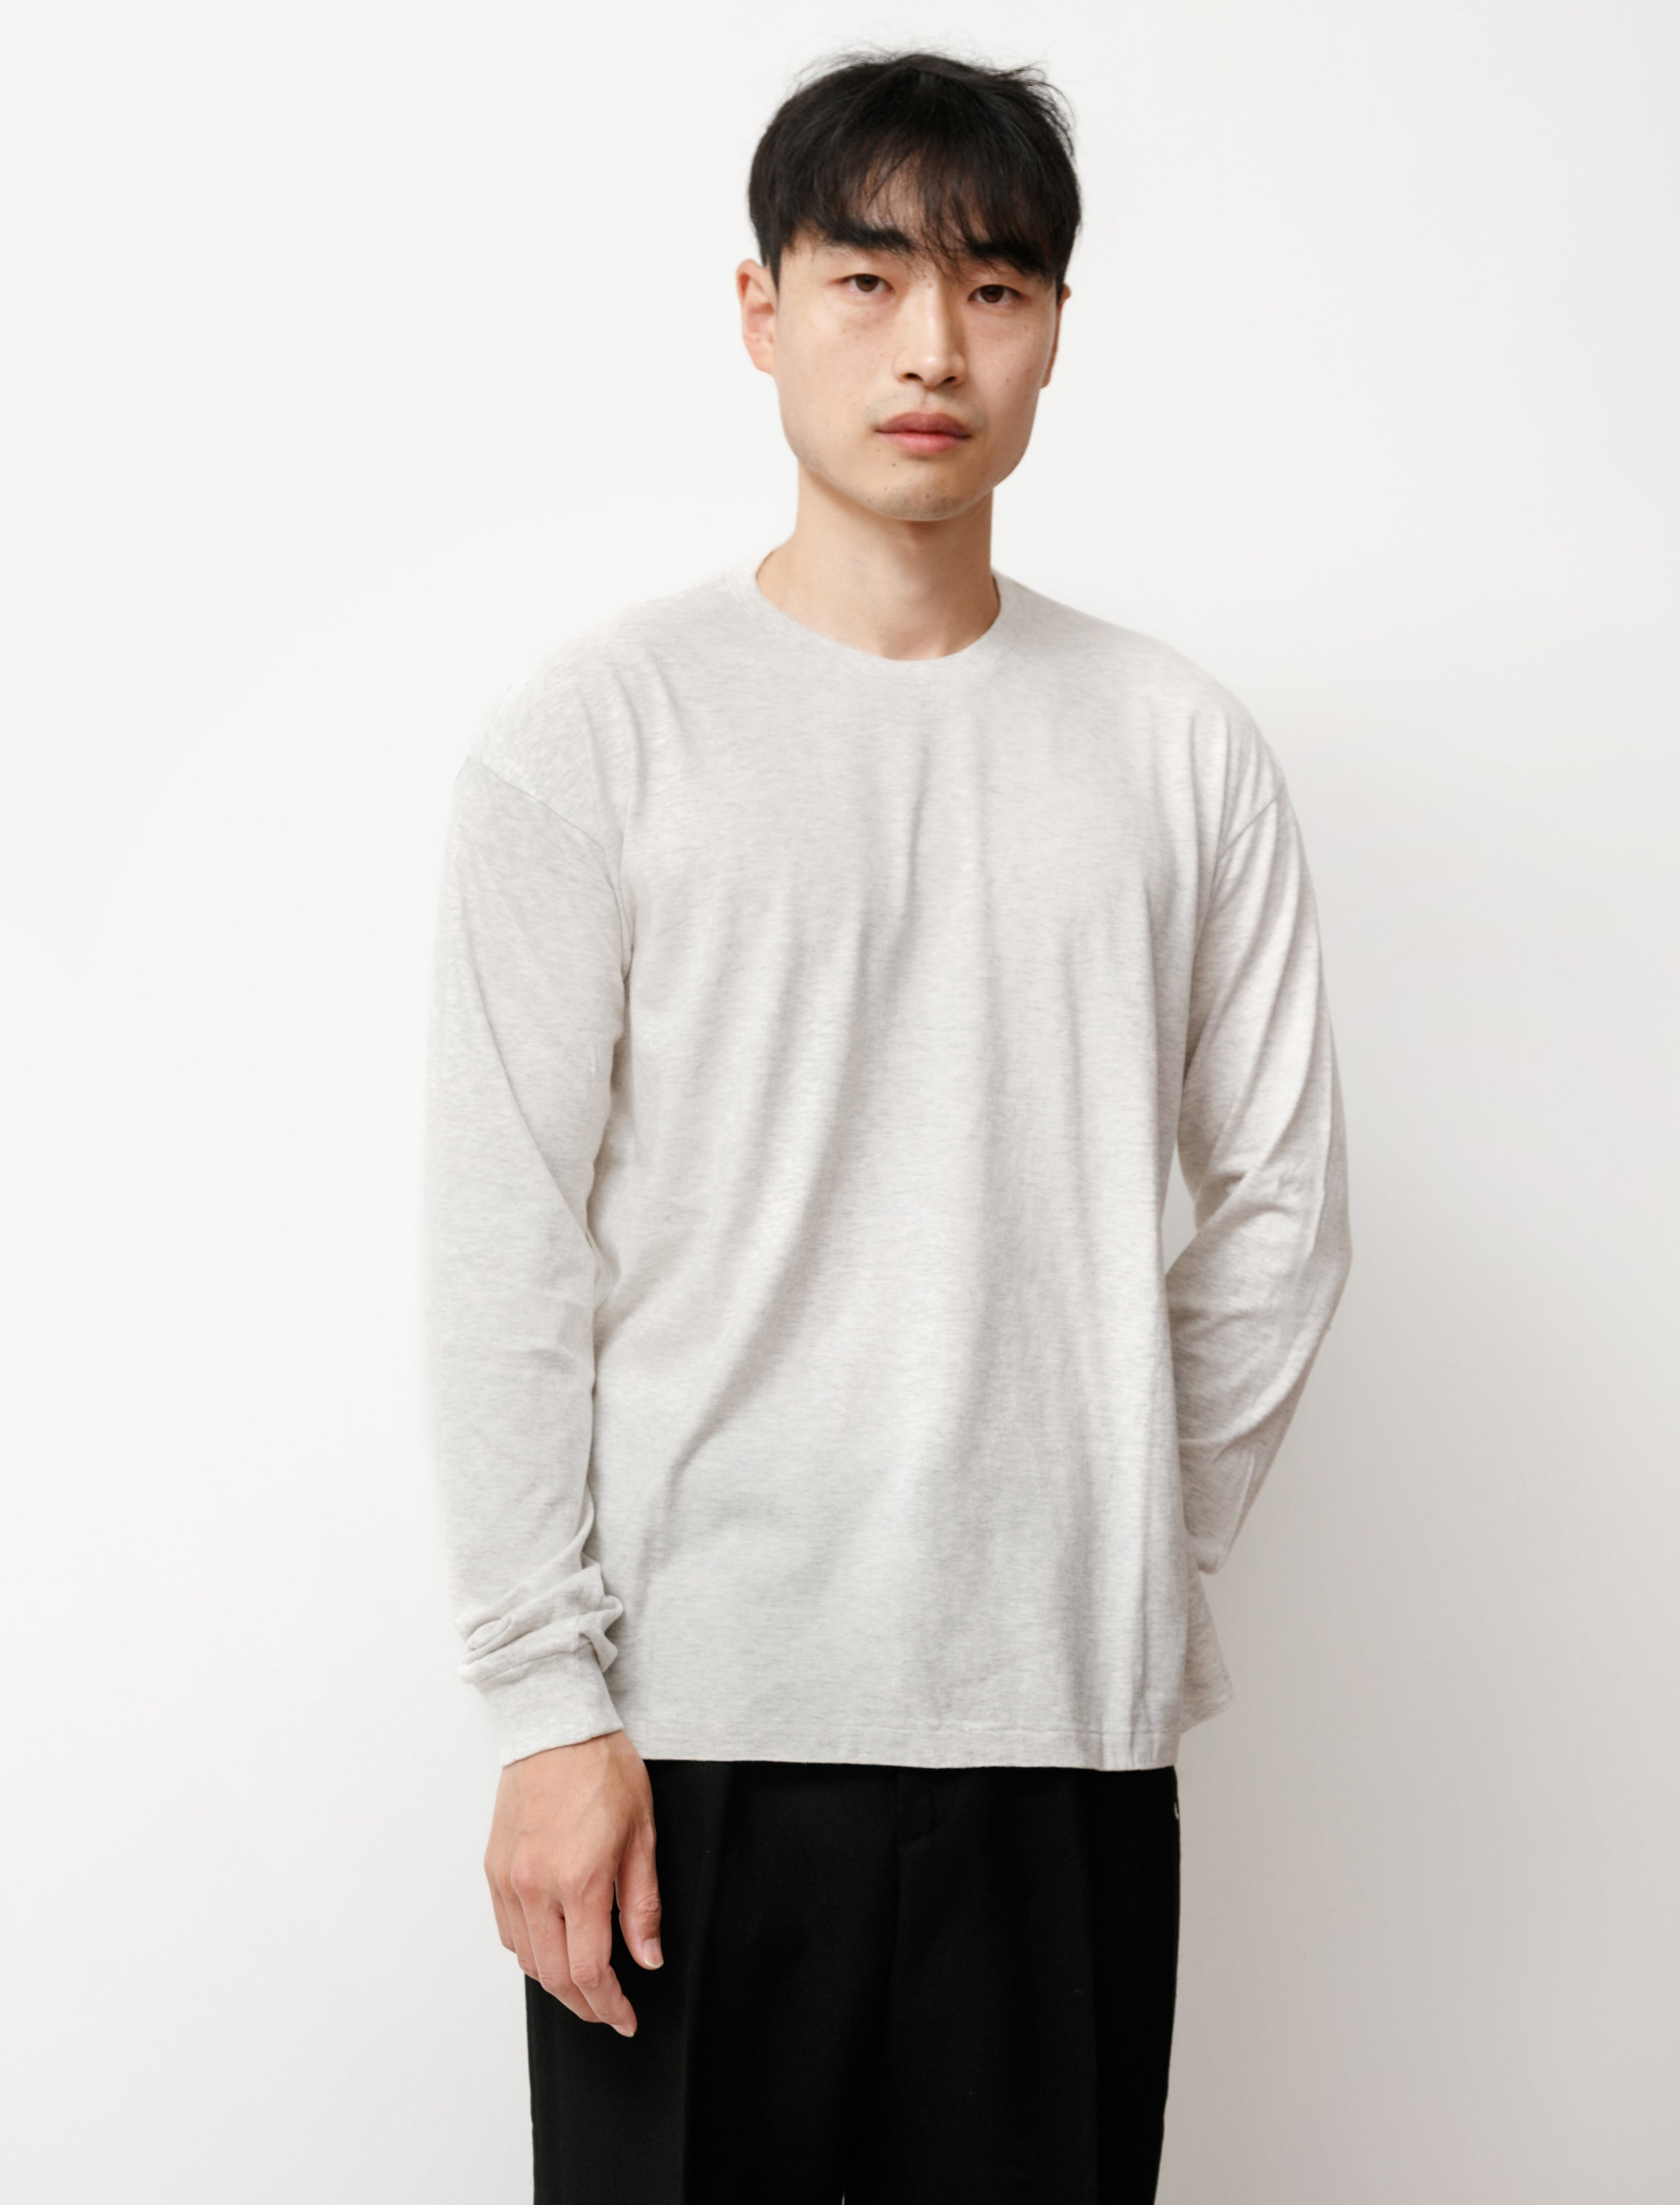 Auralee Seamless L/S Crew Tee Top Gray